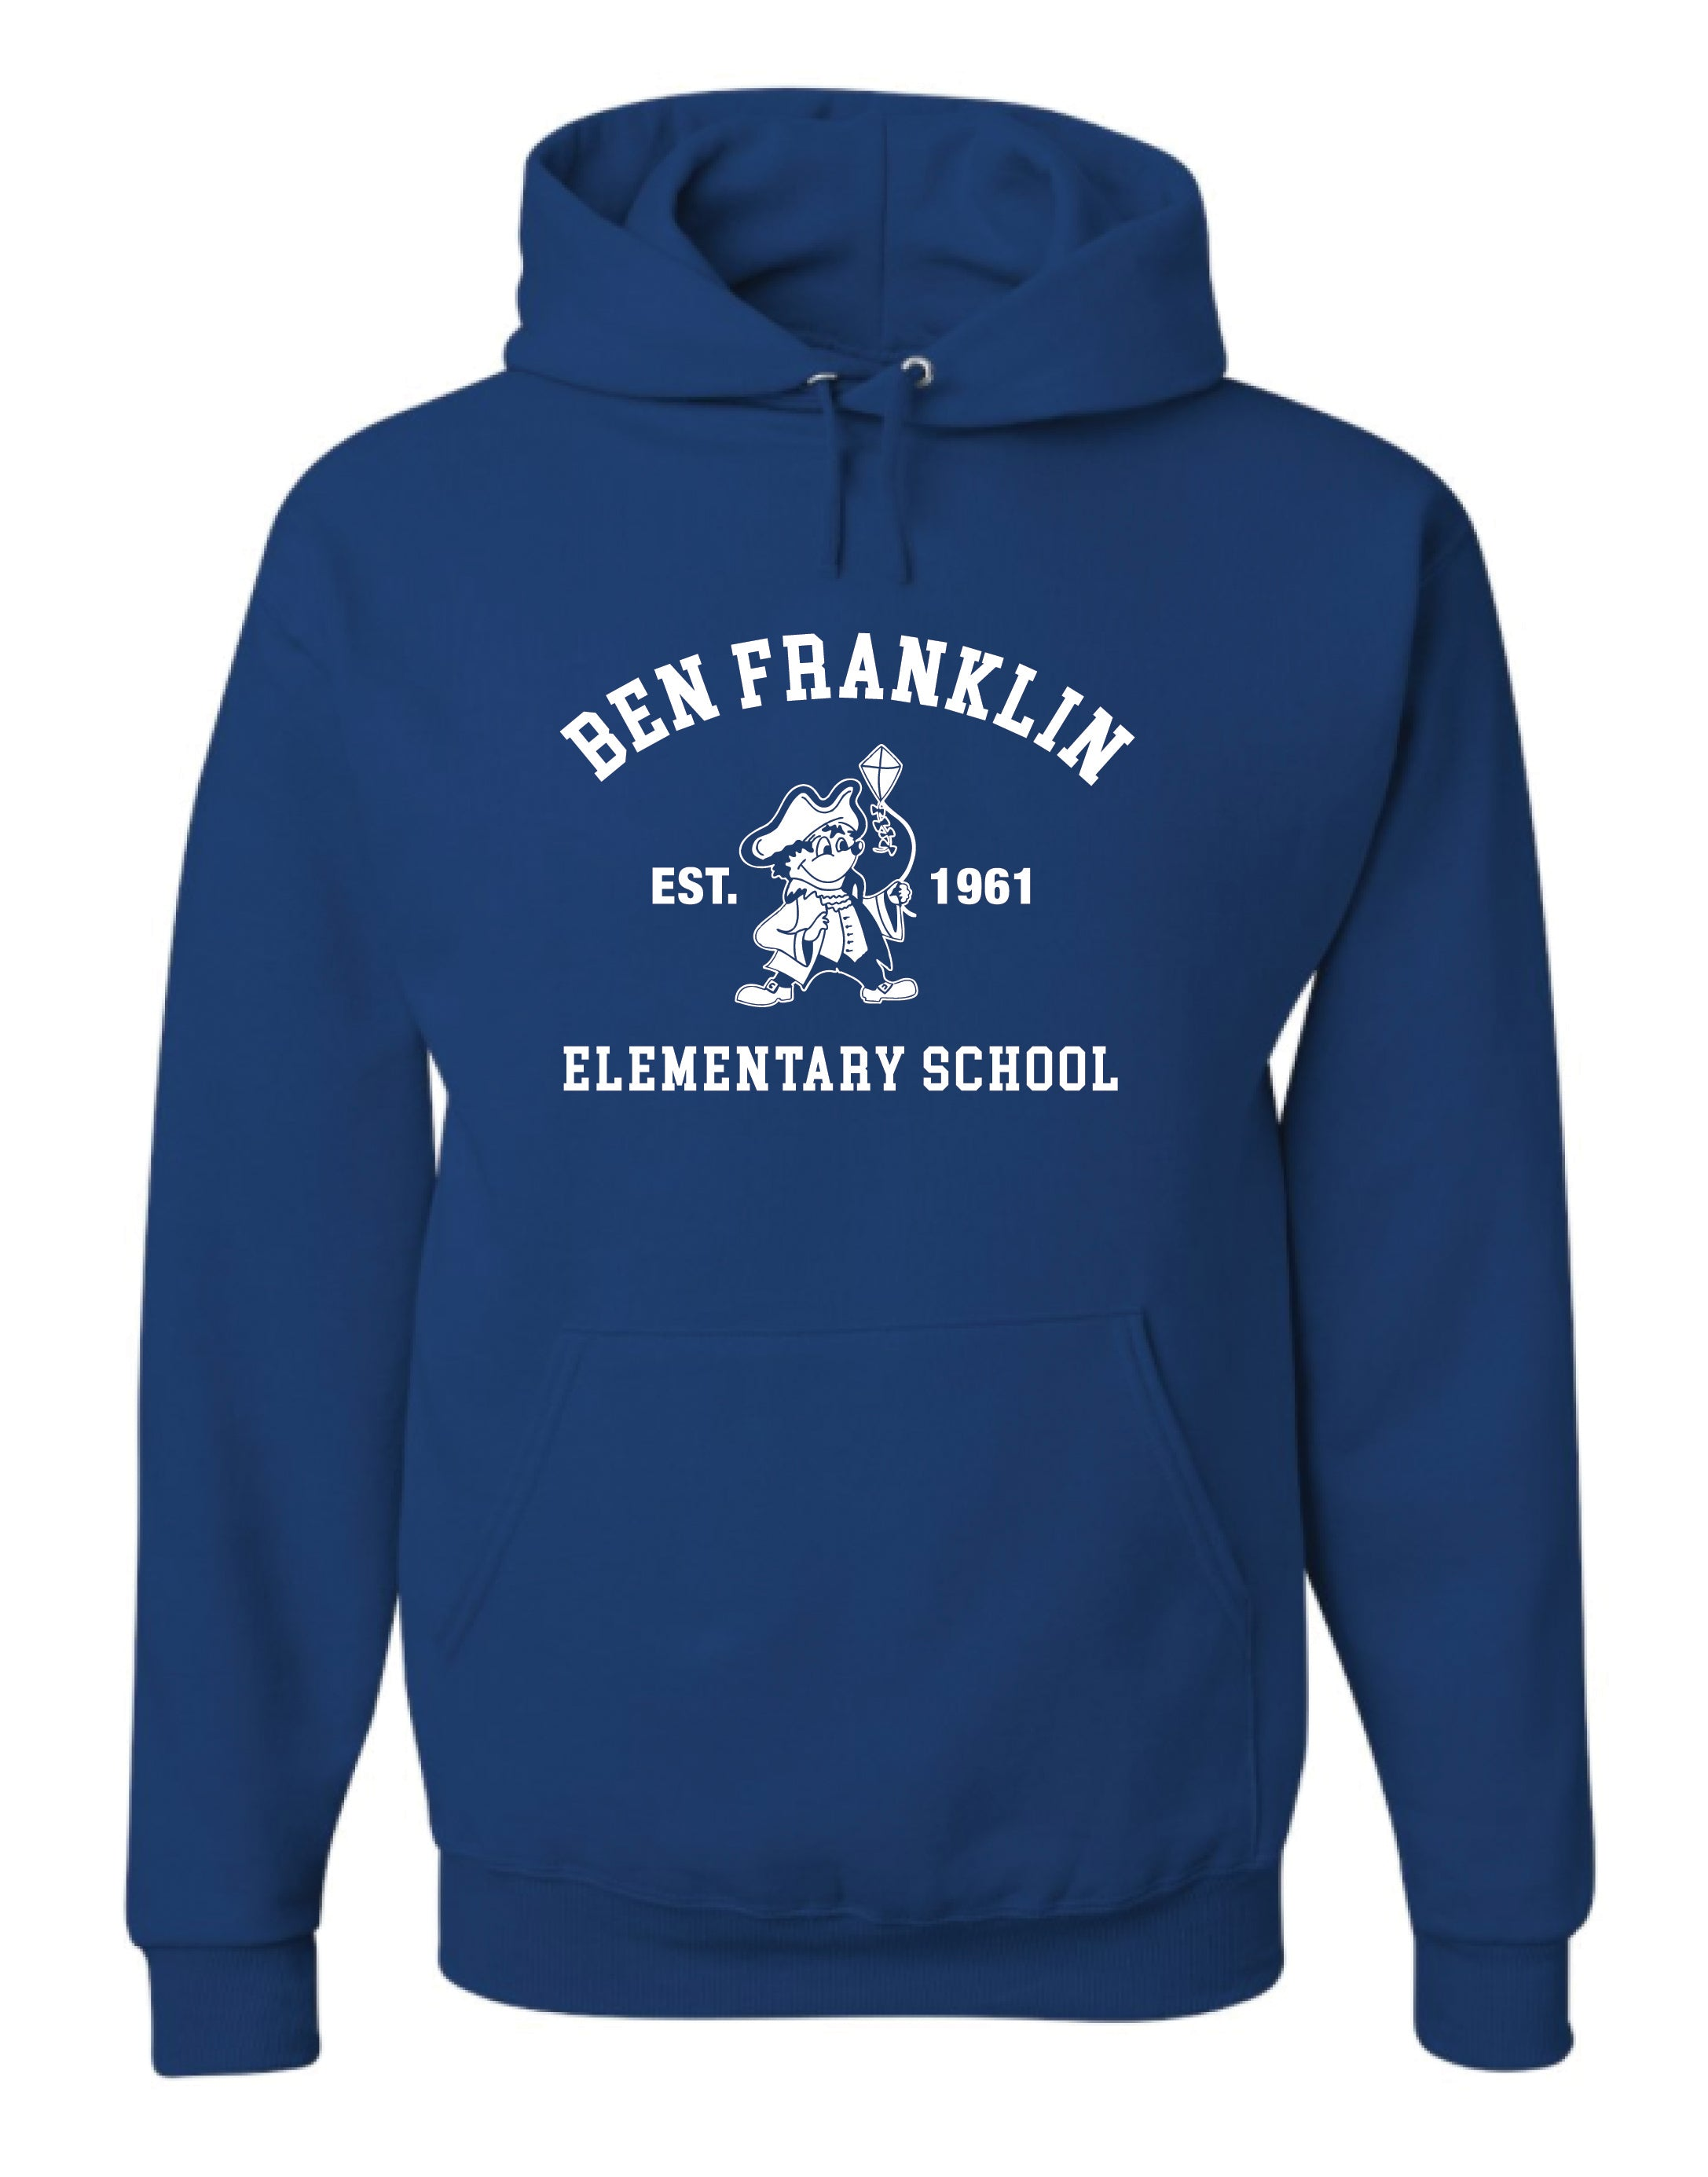 BFES Blue Hoodie- Adult Unisex and Youth